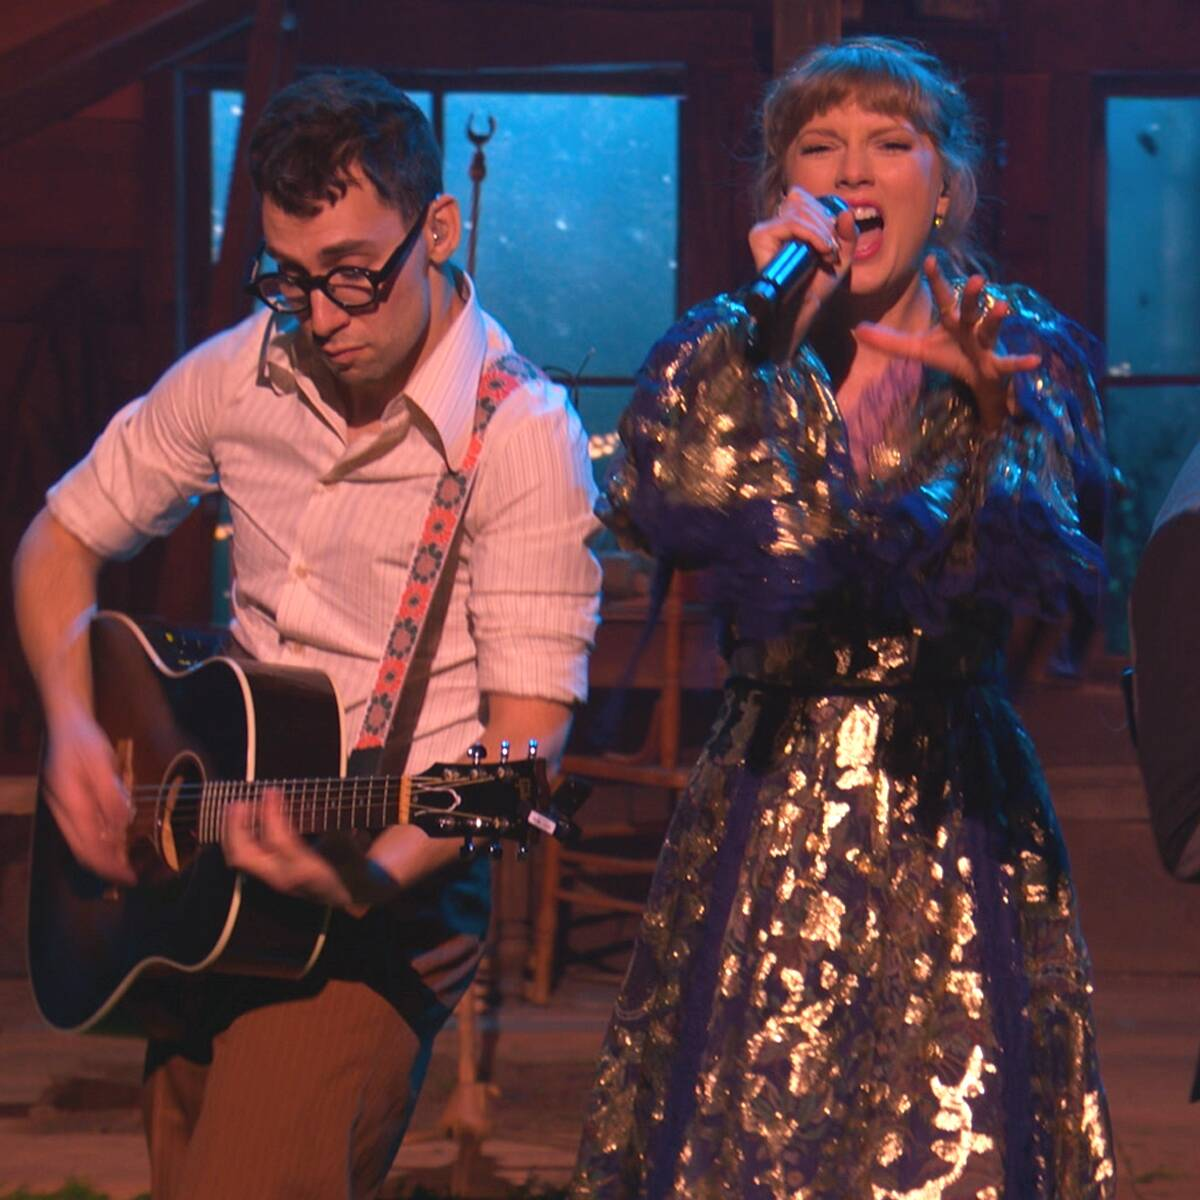 Taylor Swift and Jack Antonoff's Secret Handshake Is Back and Wilder Than Ever at 2021 Grammys